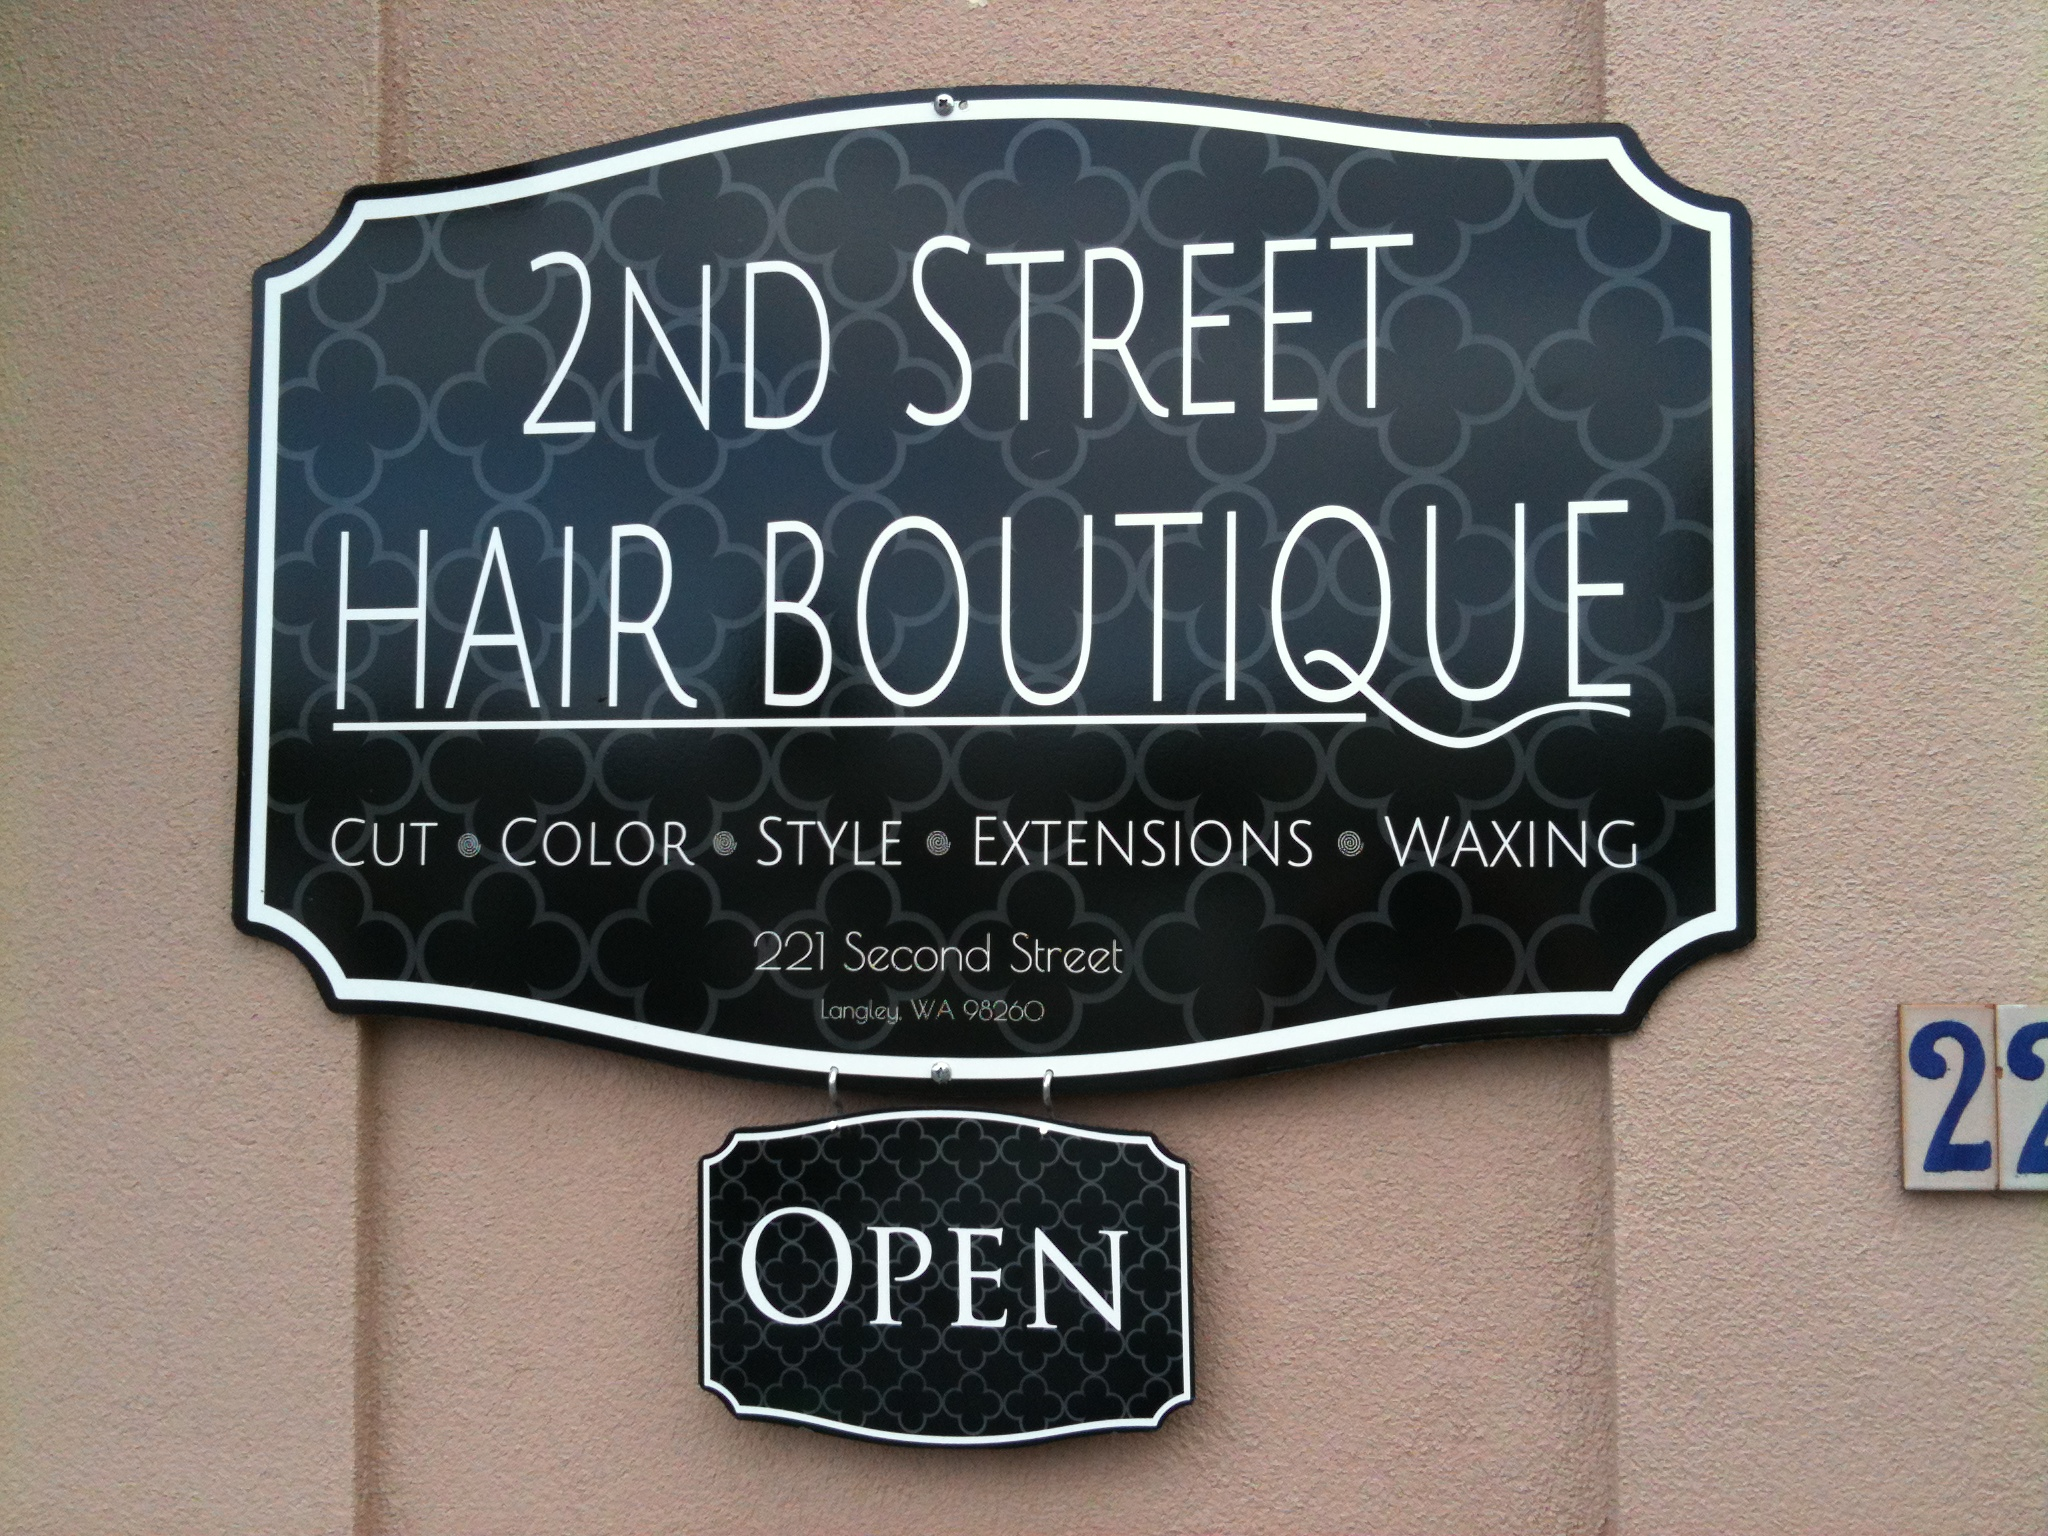 2nd Street Hair Boutique